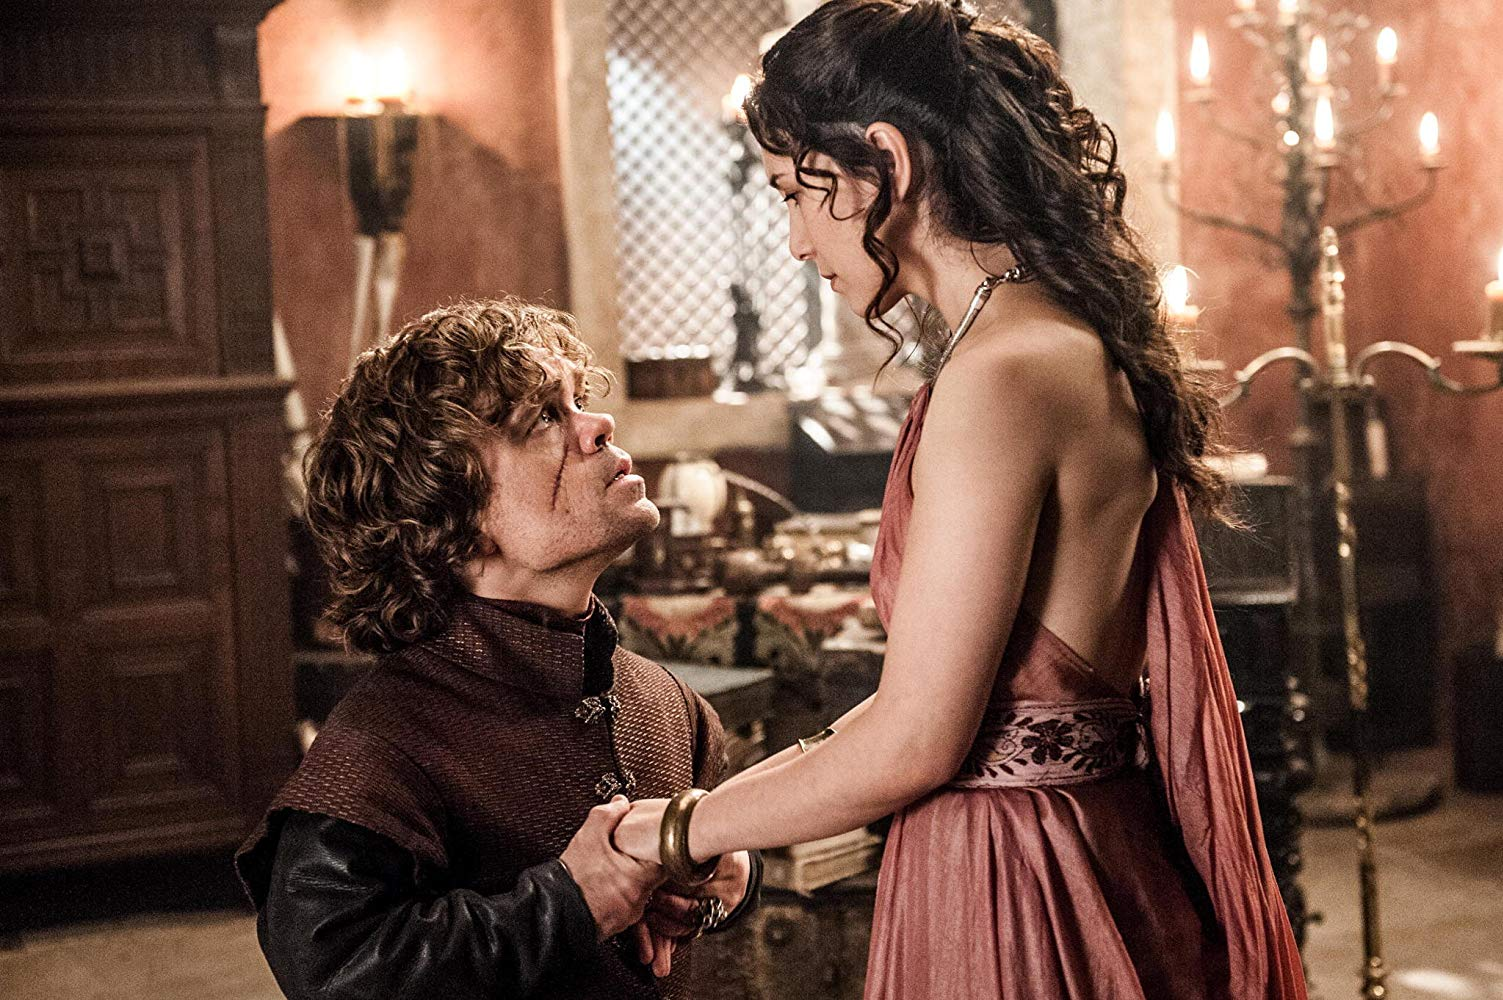 Peter Dinklage as Tyrion Lannister and Sibel Kekilli Shae in 'Game of Thrones'. (Source: IMDB)